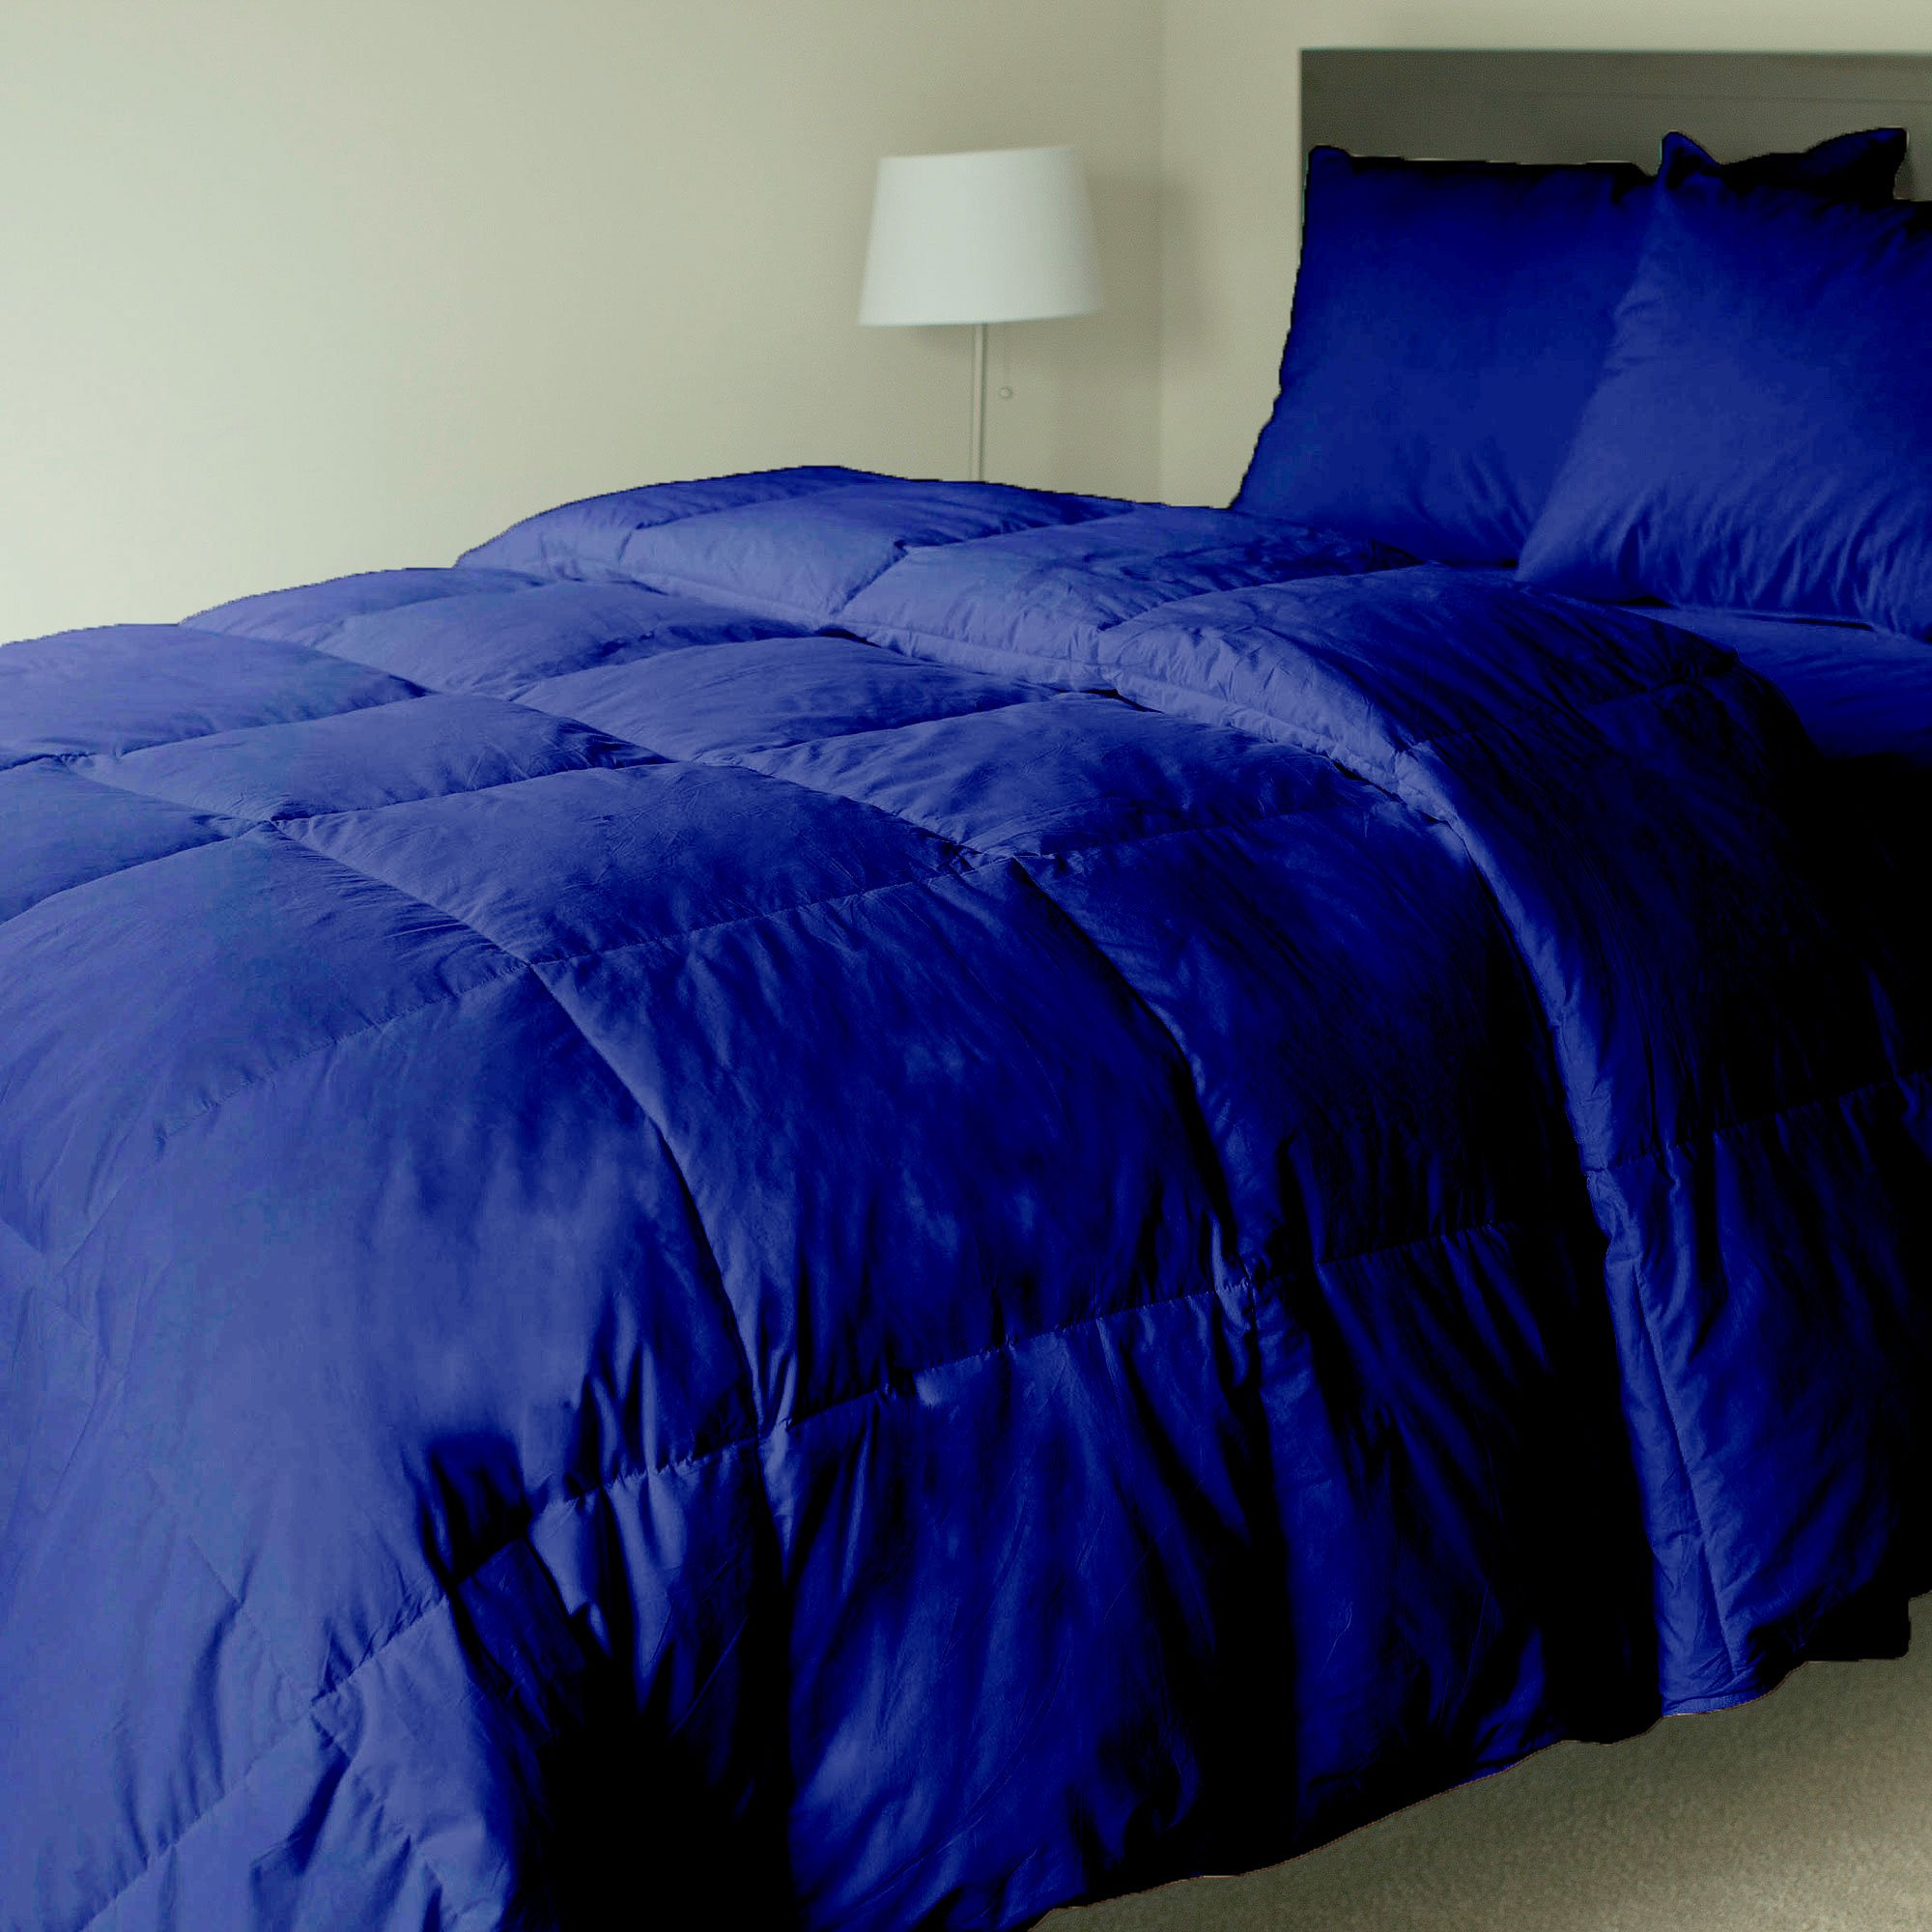 Luxurious and Premium Quality QUILTED Comforter 500 GSM GOTS Certified HEAVEN LIKE FEEL All-Season HYPOALLERGENIC Fluffy-Ultra-Soft-Lightweight,100% ORGANIC COTTON with Italian Finish(King-Navy blue)